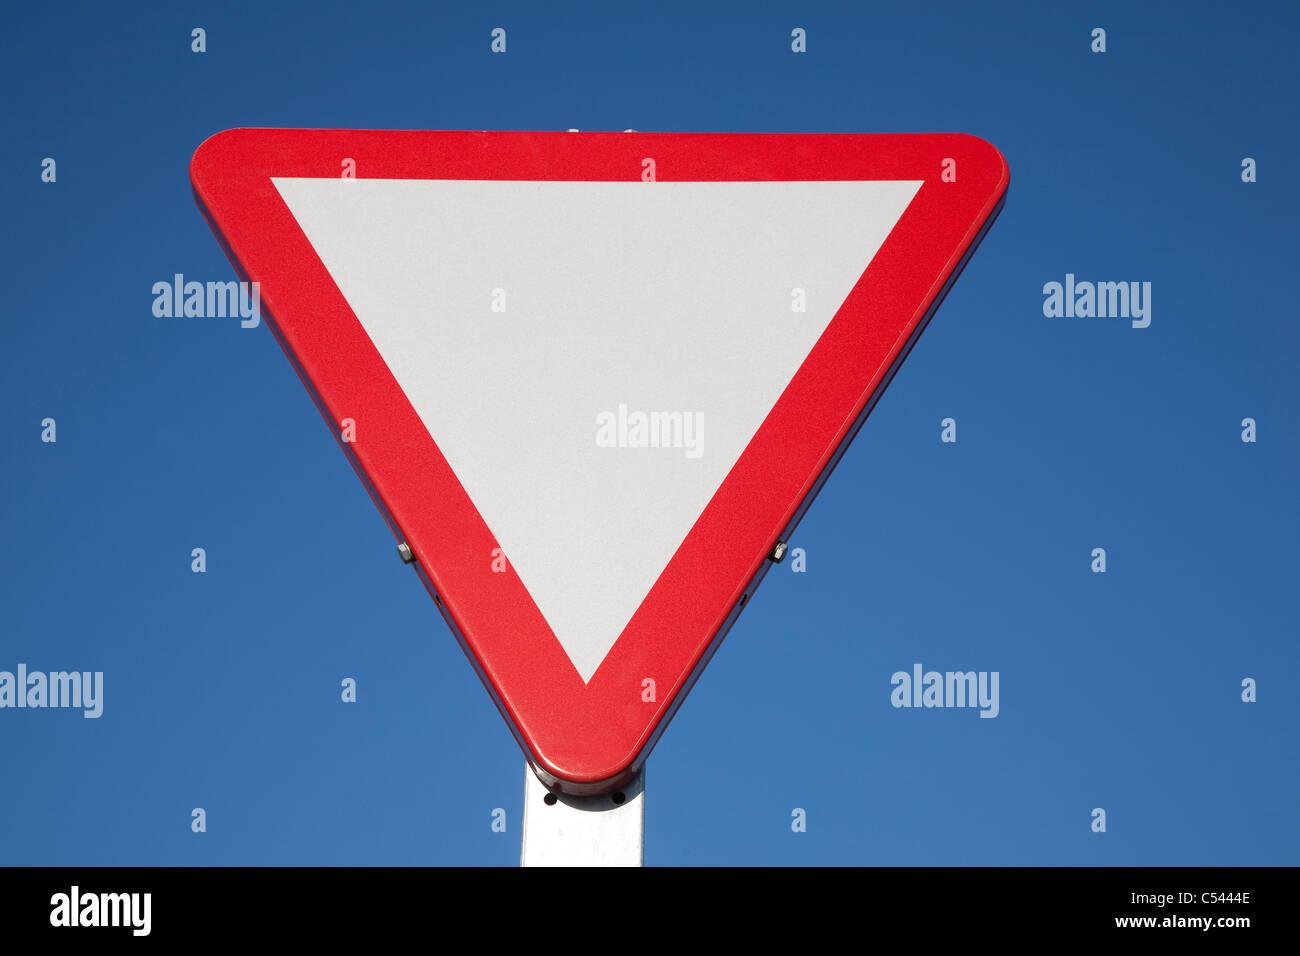 Blank Give Way Sign against Blue Sky Background Stock Photo